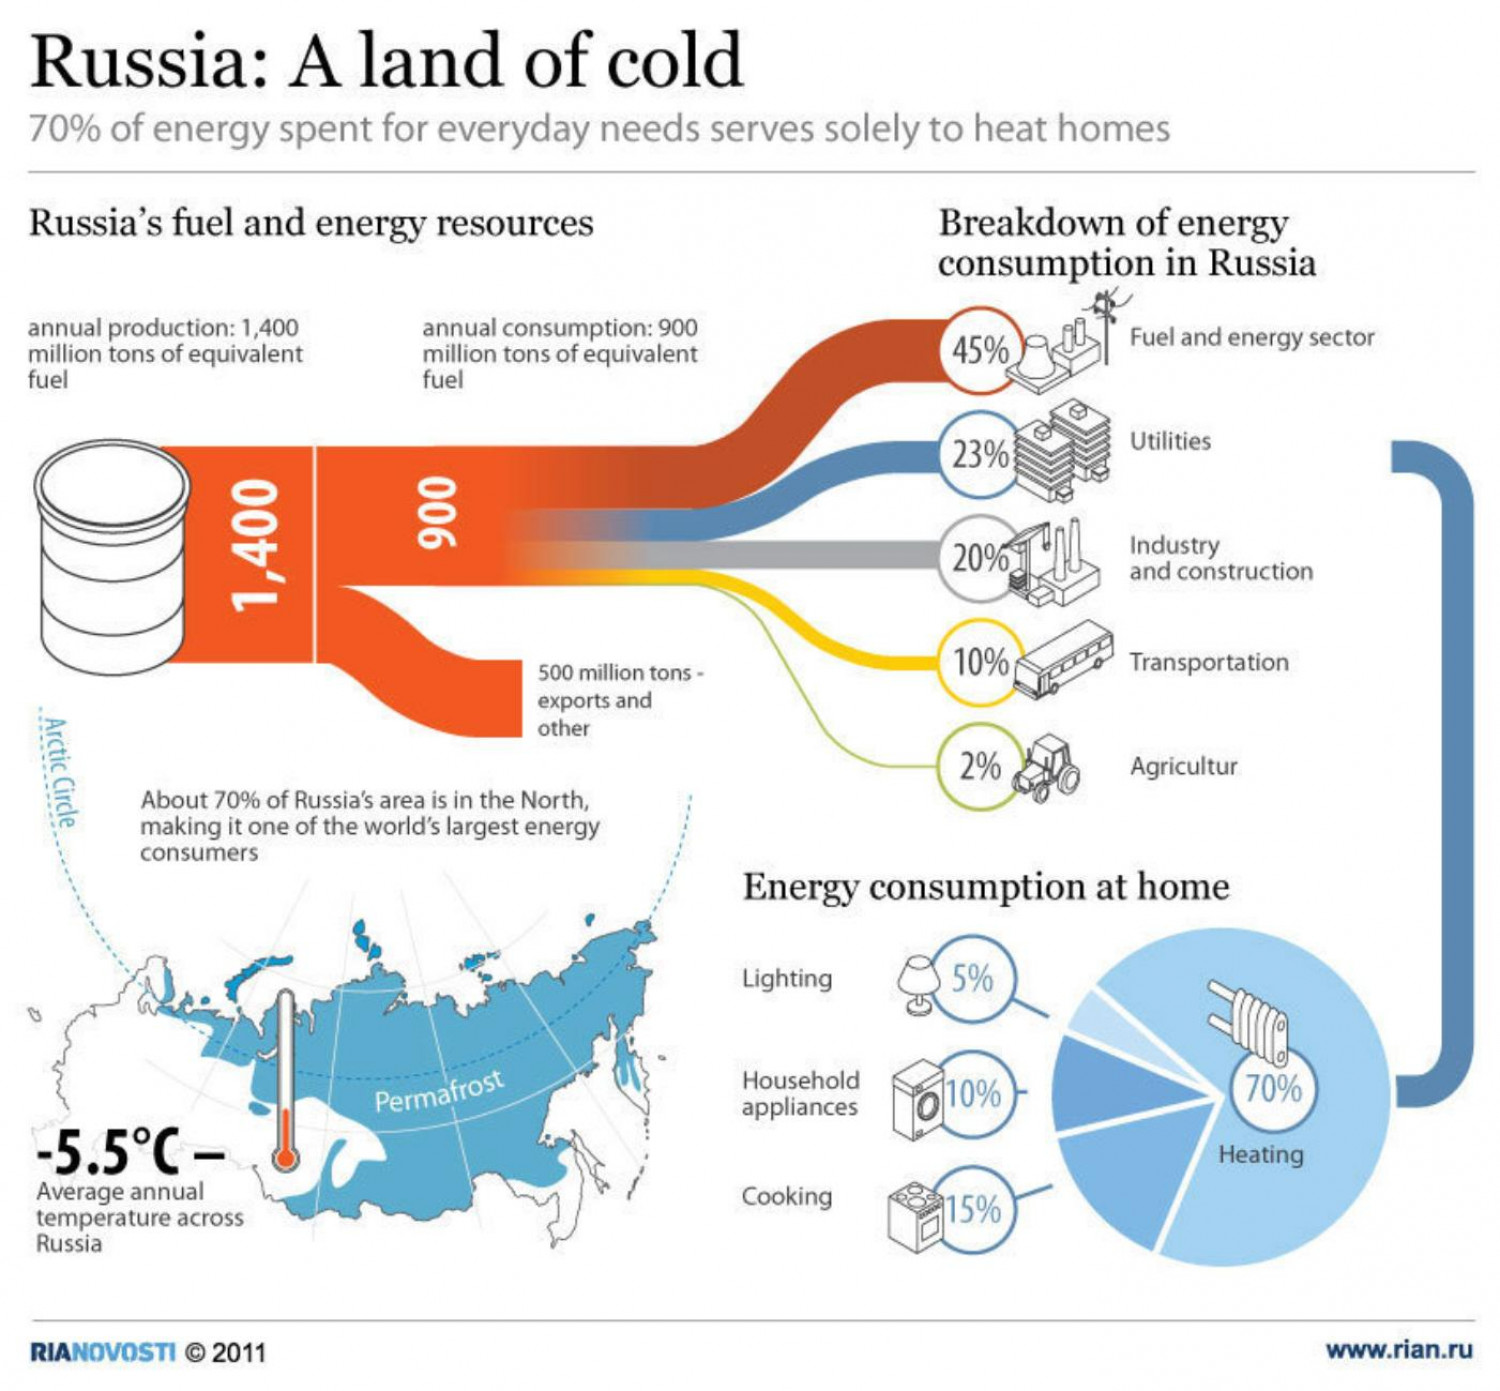 Russia: A land of cold Infographic